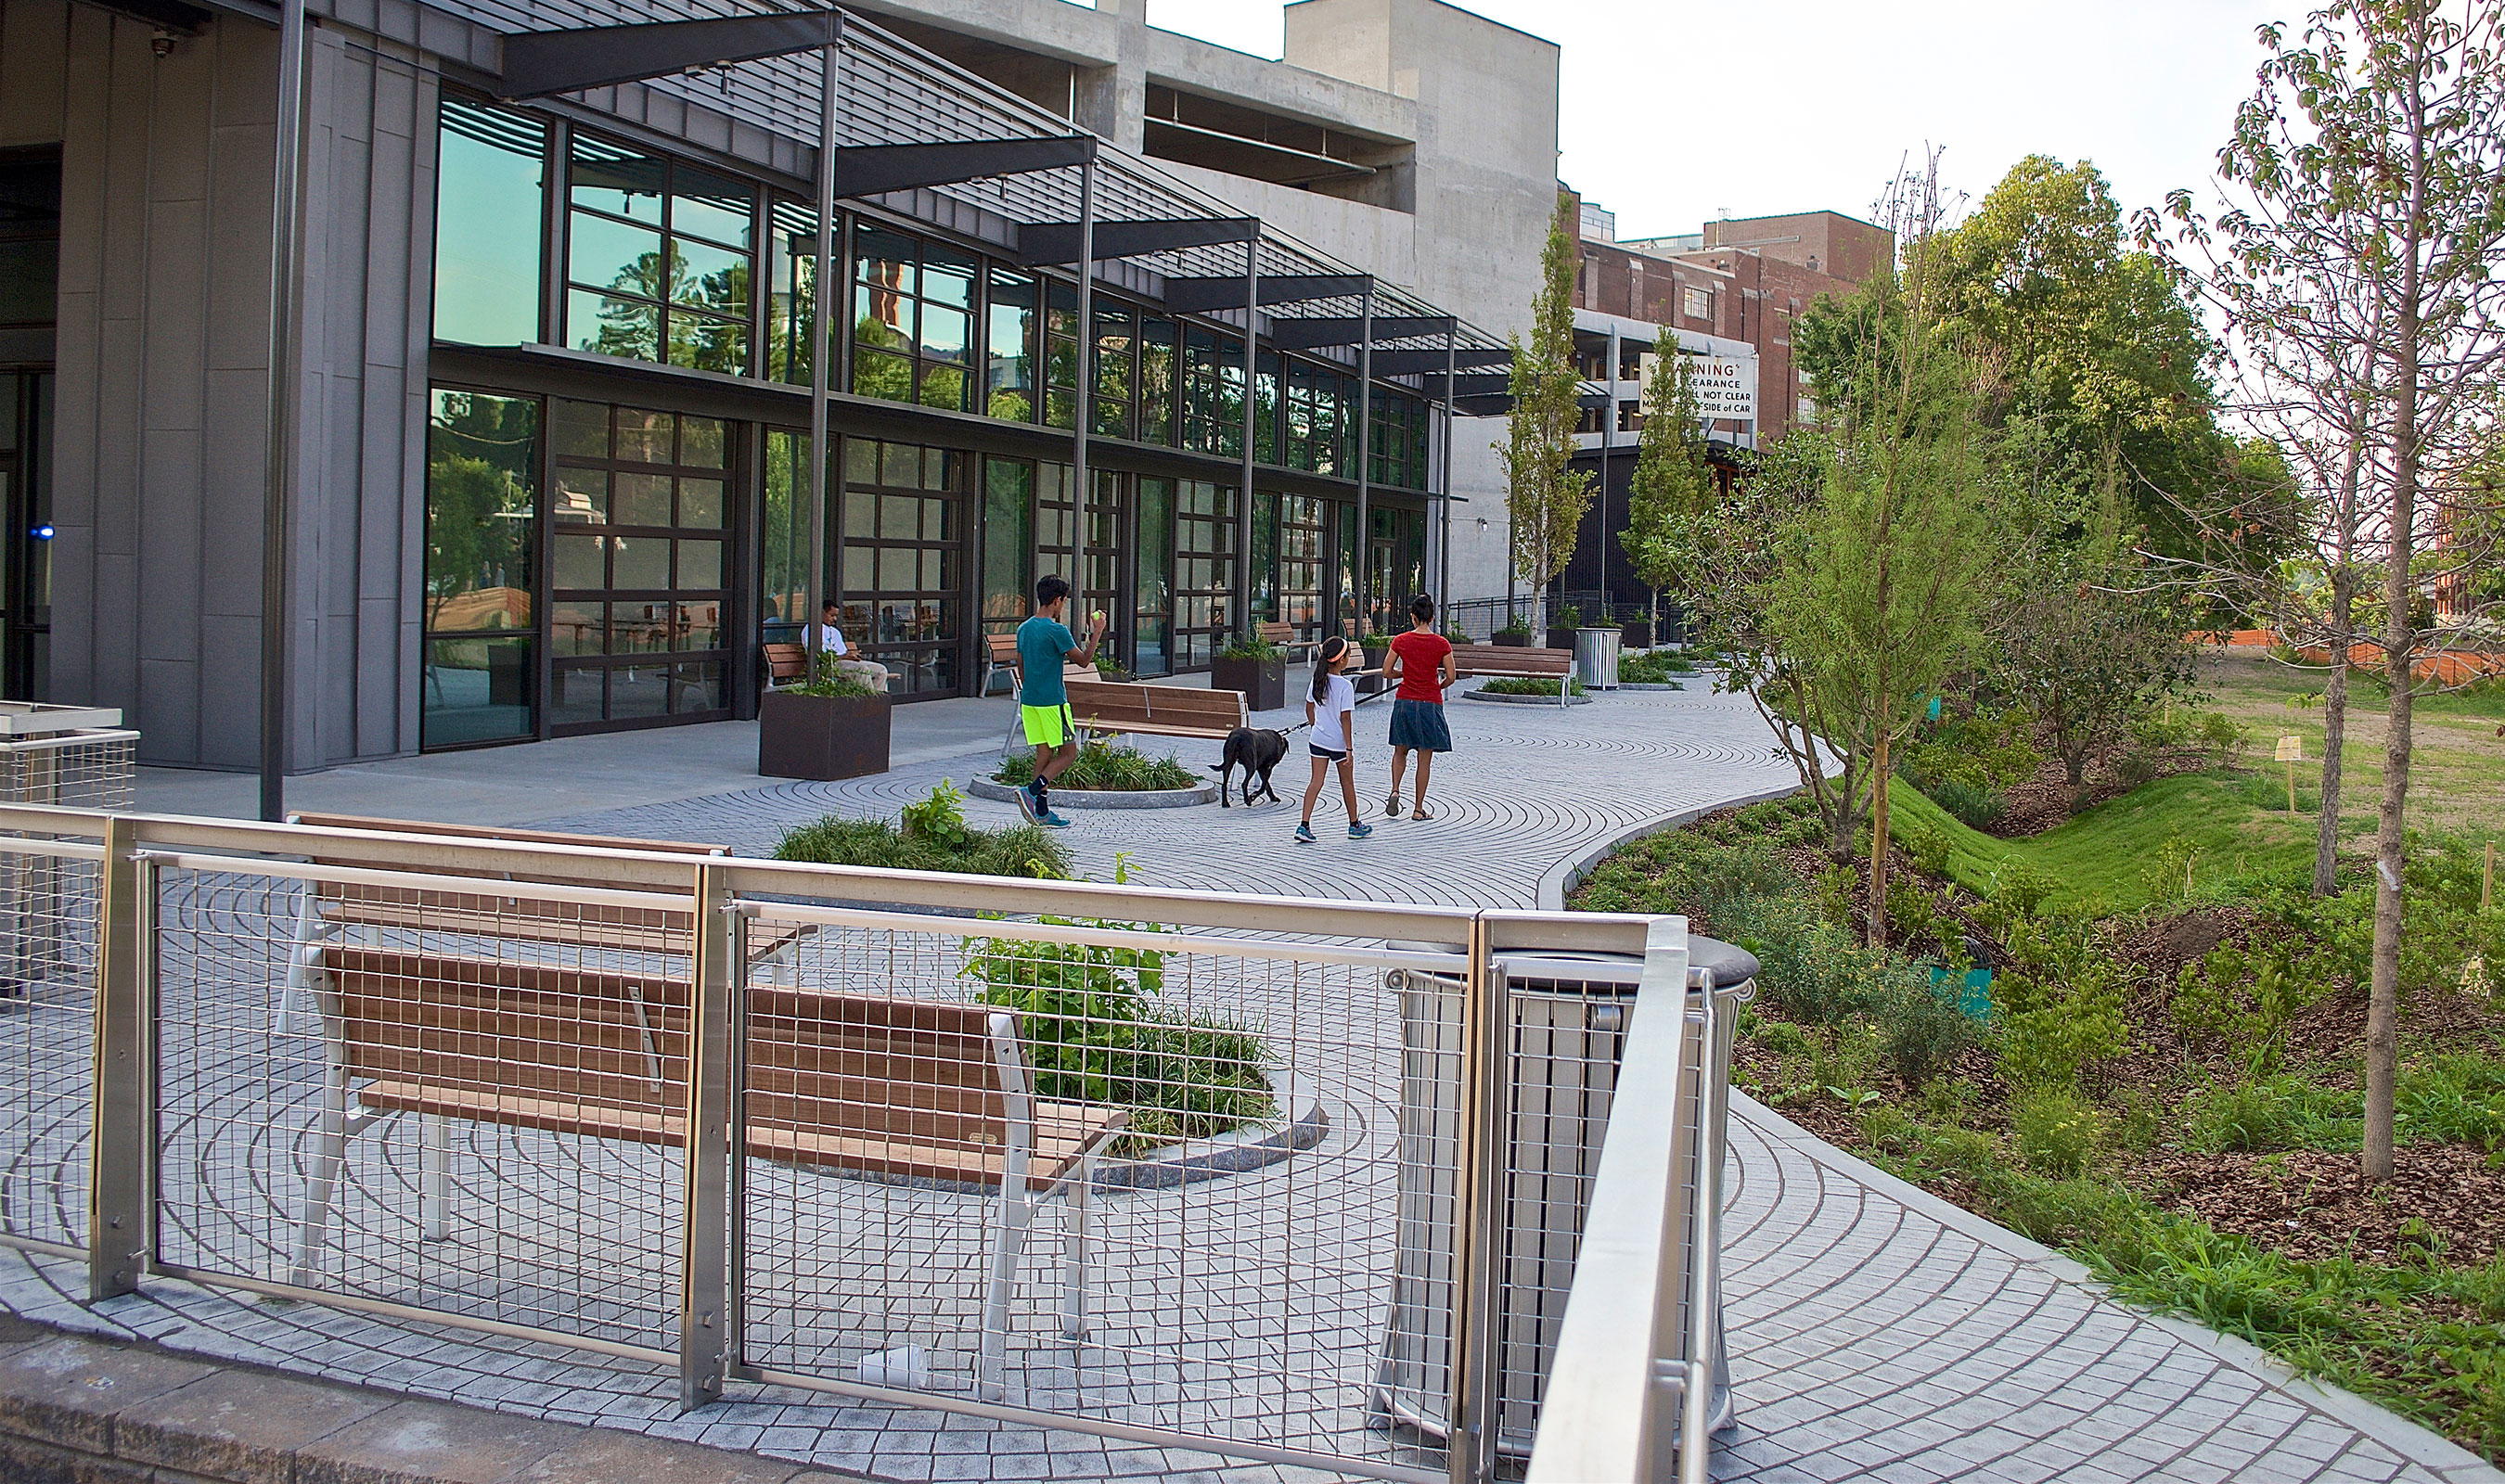 SJD-3 wire mesh in stainless steel graces some of the railings amidst trails and walkways.